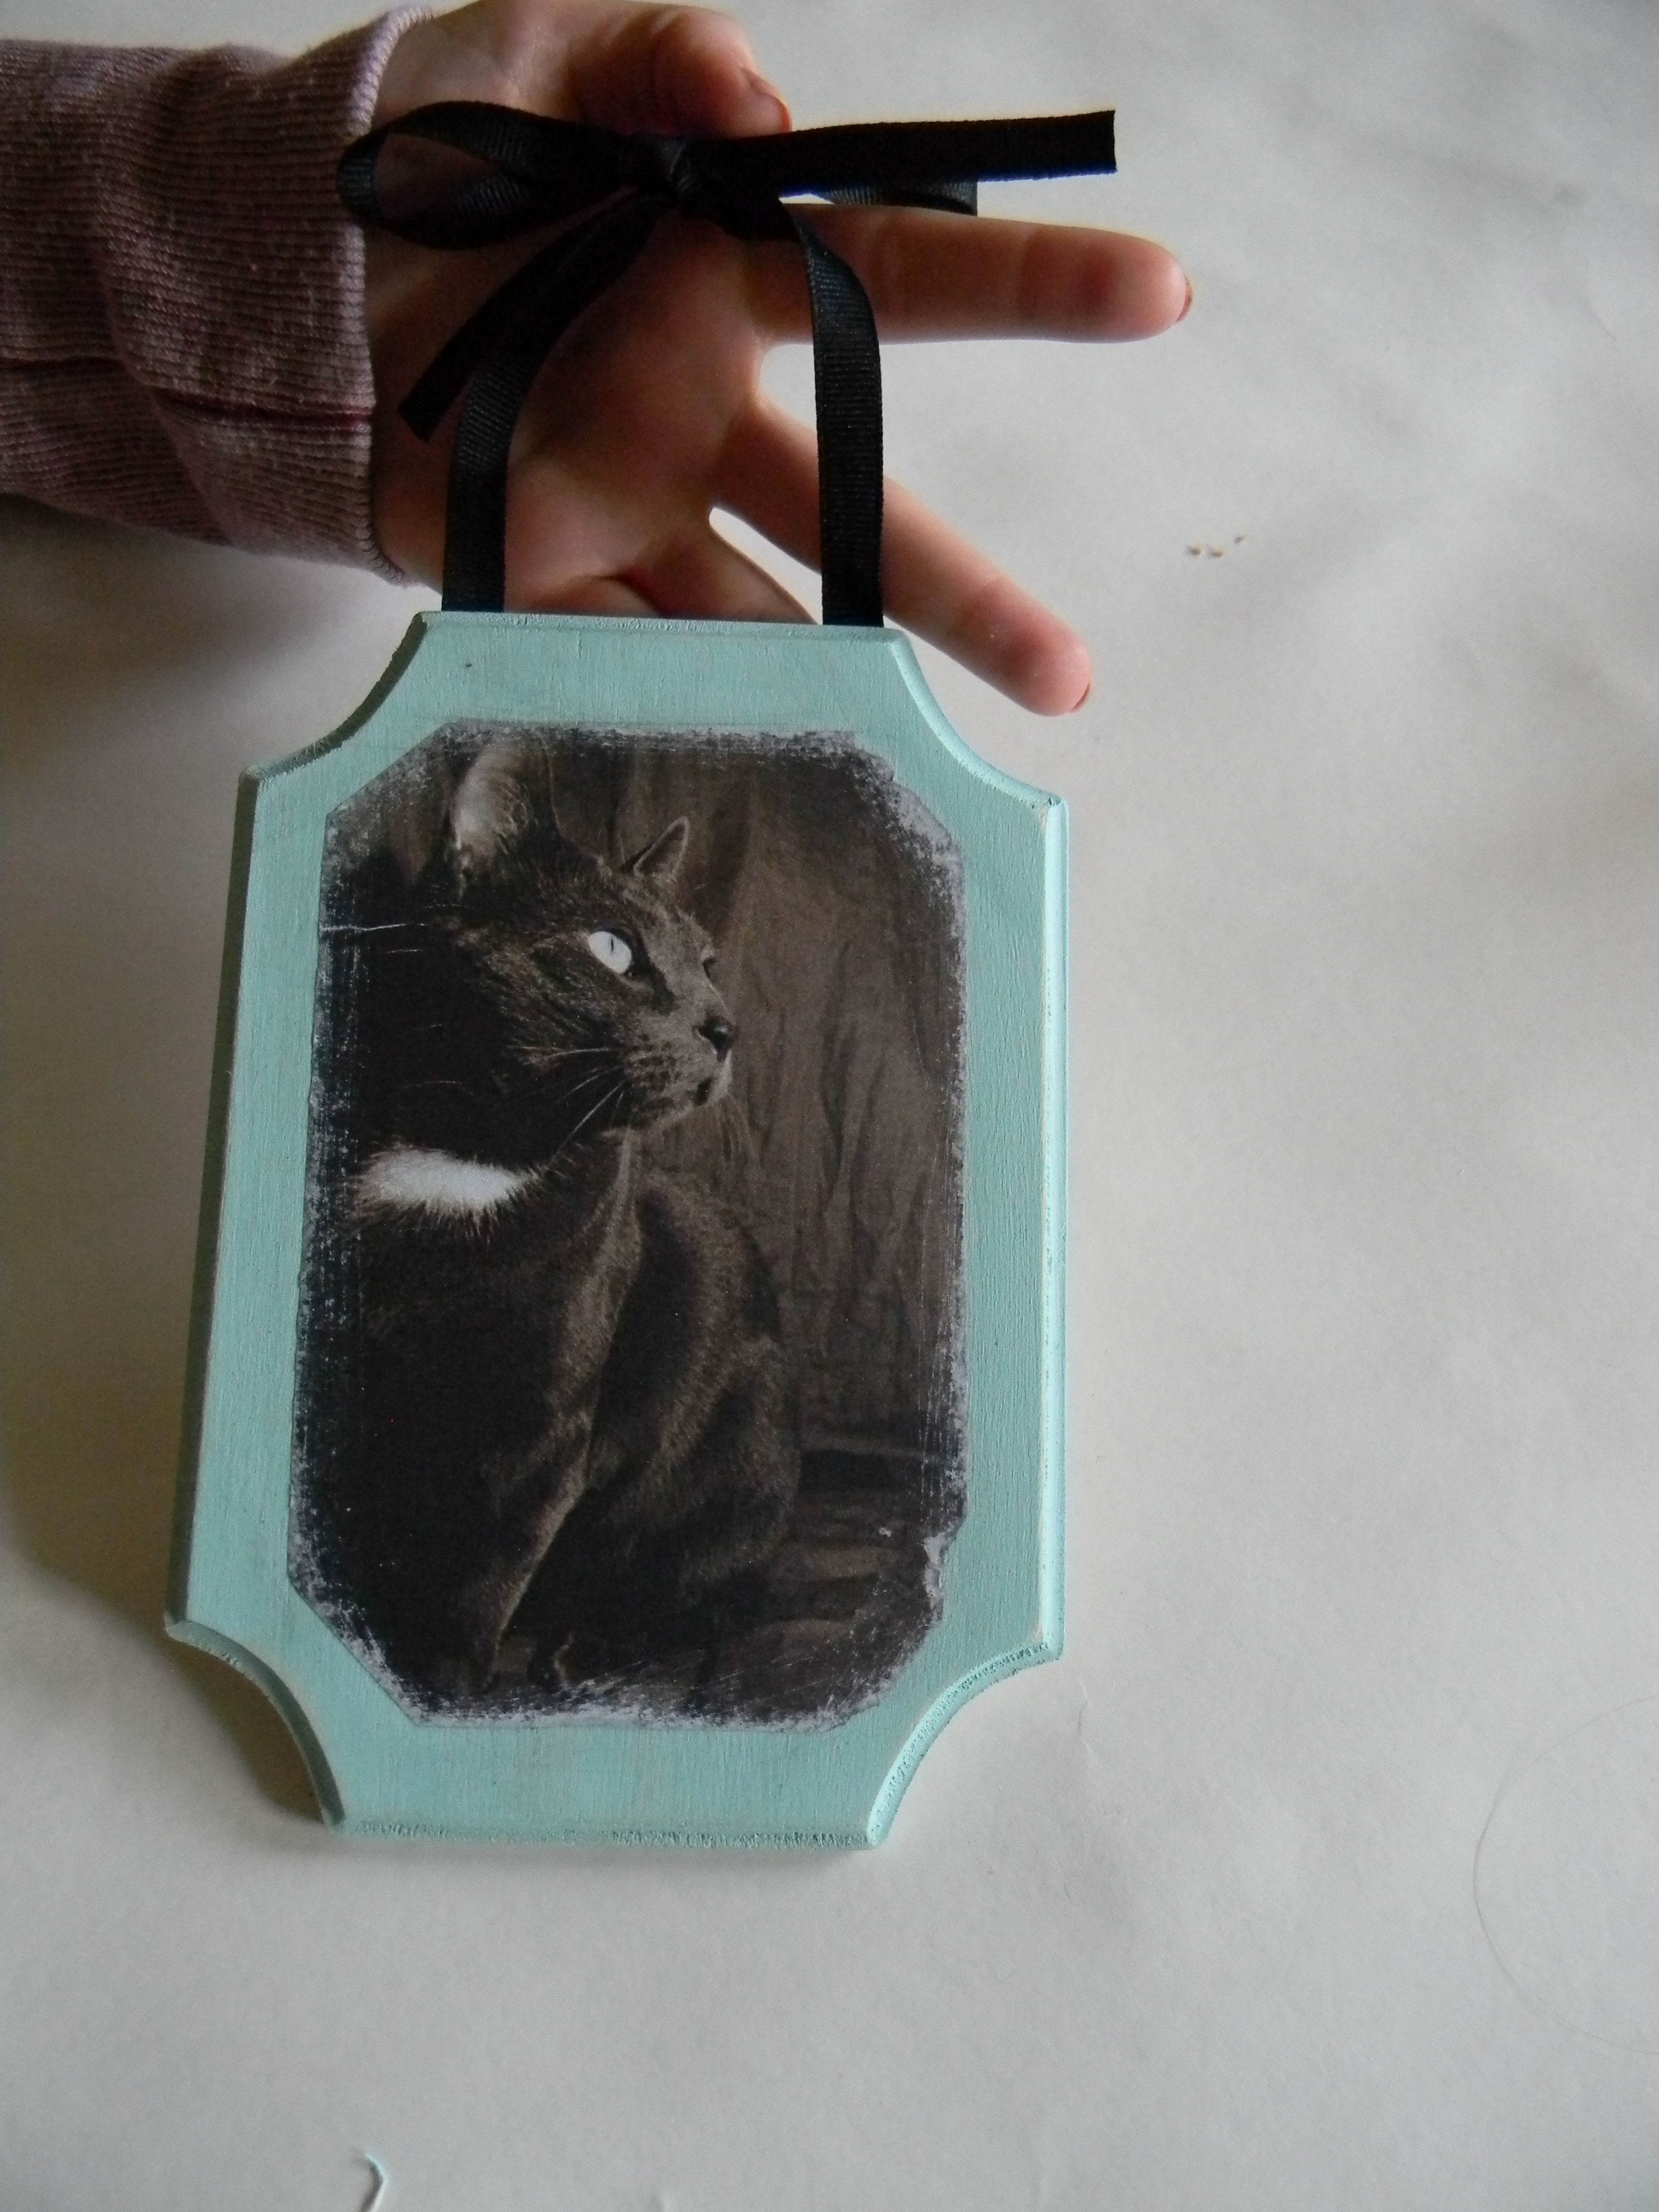 Transferring a Picture Onto Wood